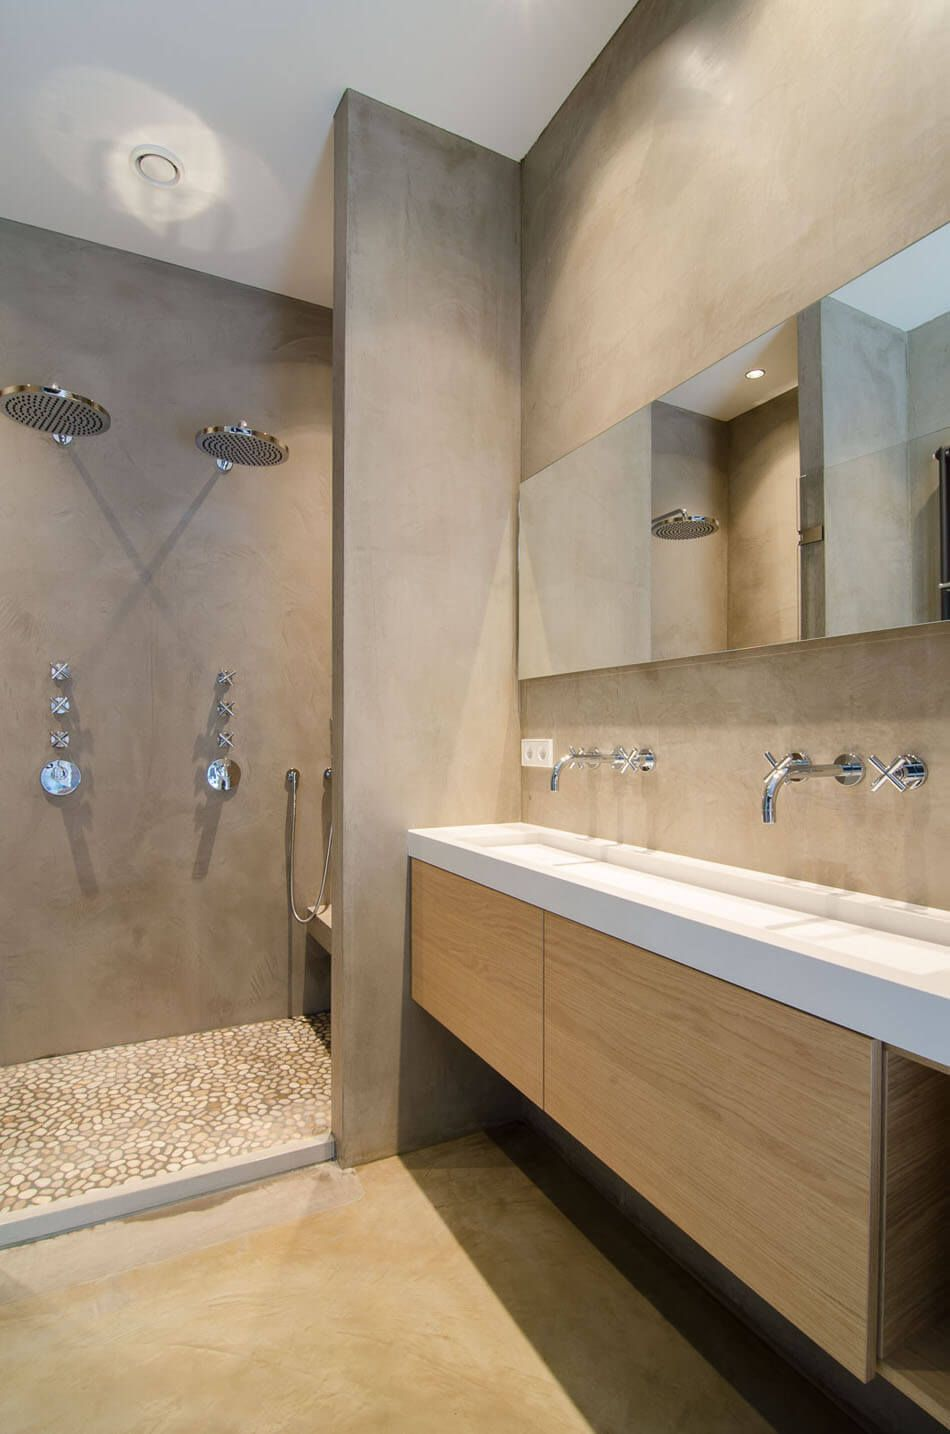 Love To Remodel My Bathroom And This Would Be Perfect Xo Bathroom Remodel Master Bathrooms Remodel Bathroom Remodel Shower